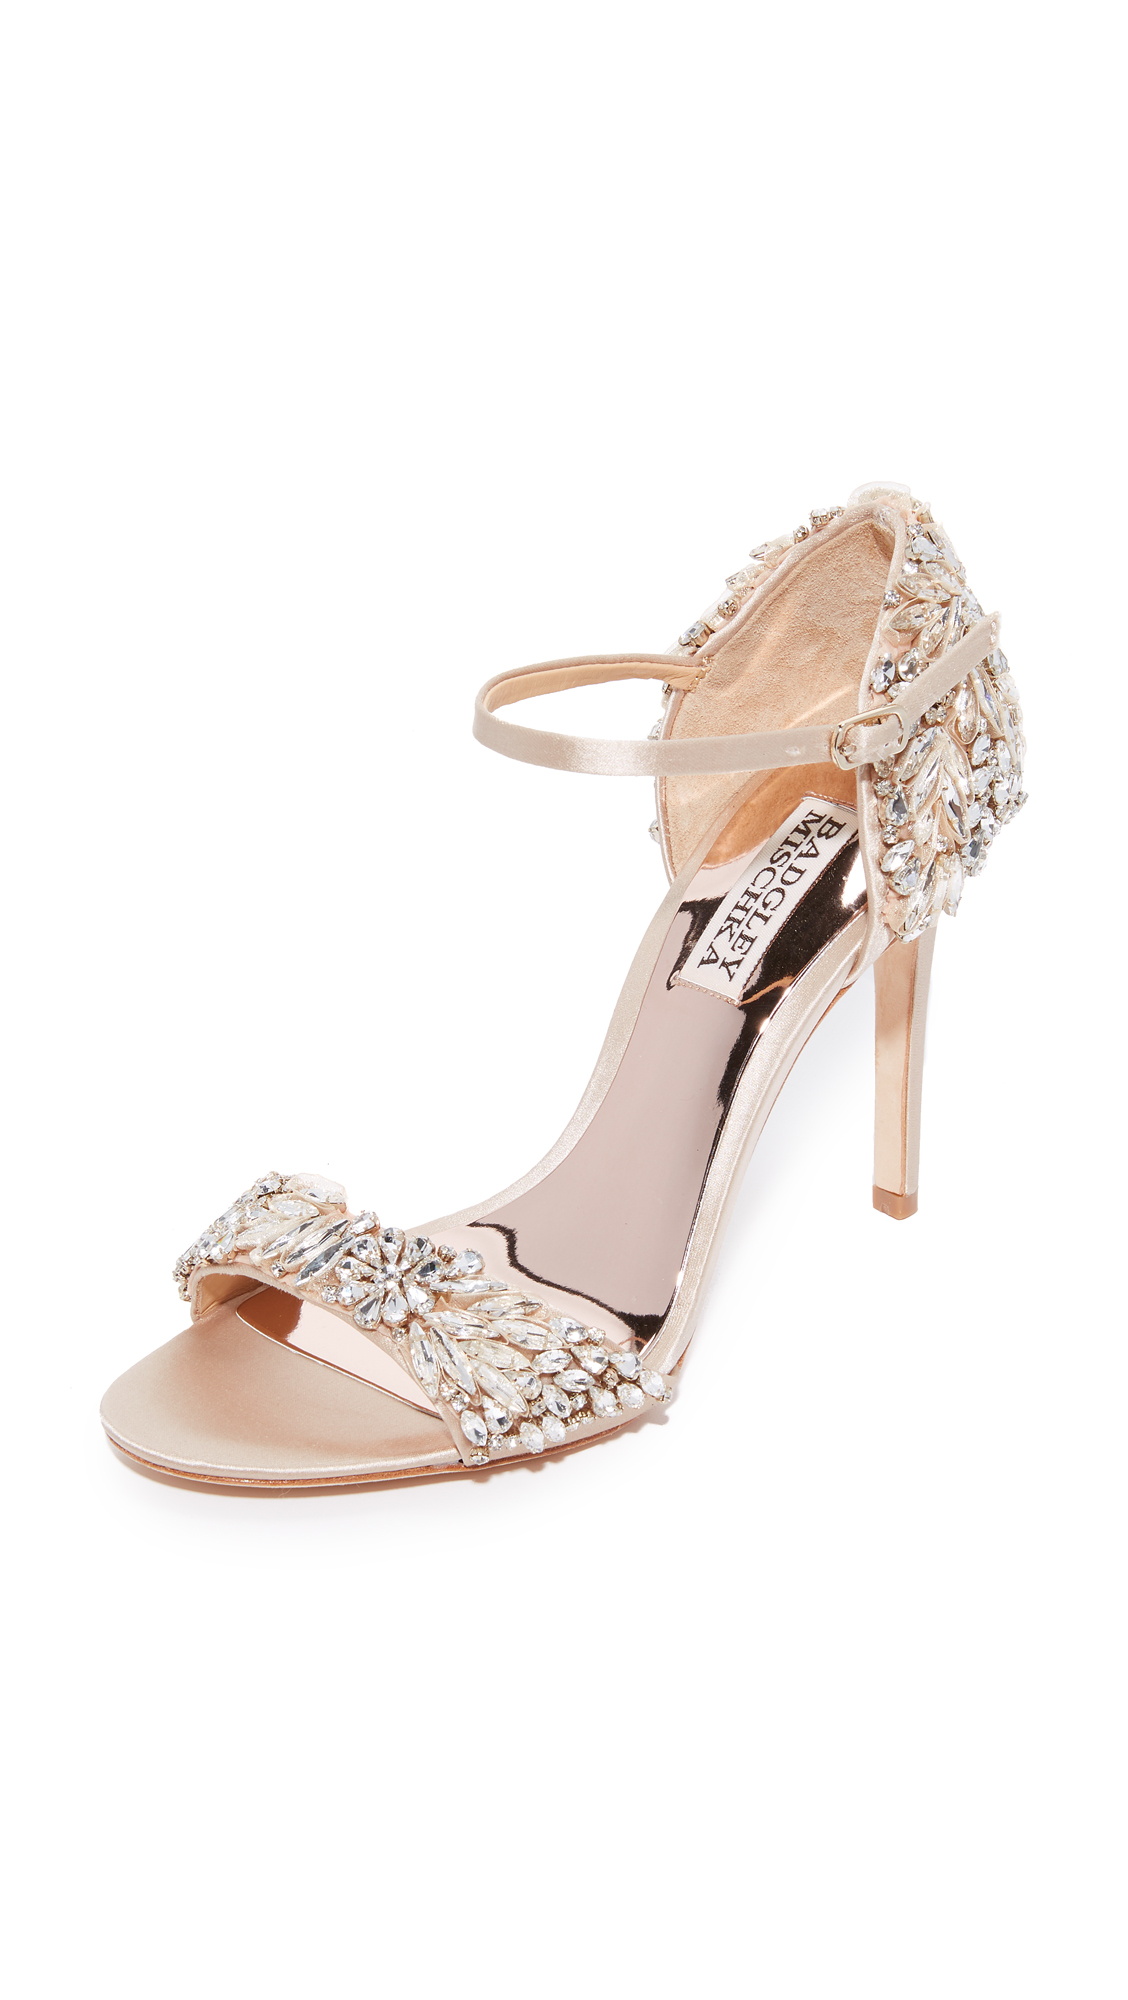 Badgley Mischka Tampa Sandals - Nude